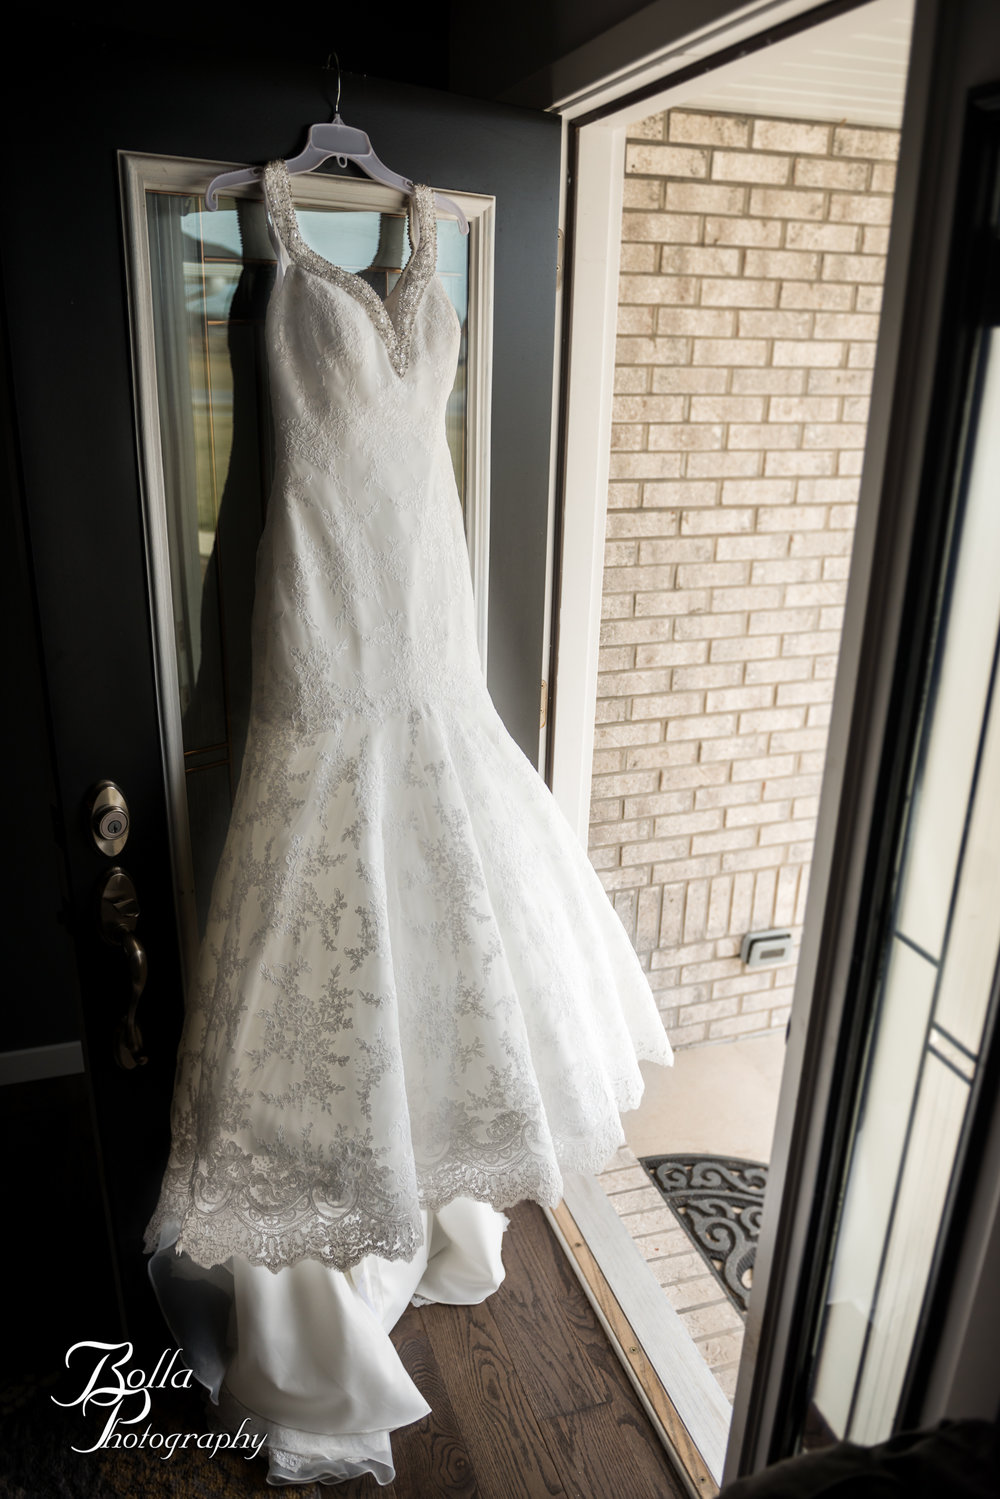 Bolla_photography_edwardsville_wedding_photographer_st_louis_weddings_highland_Allen_Warren_winter_red-0006.jpg